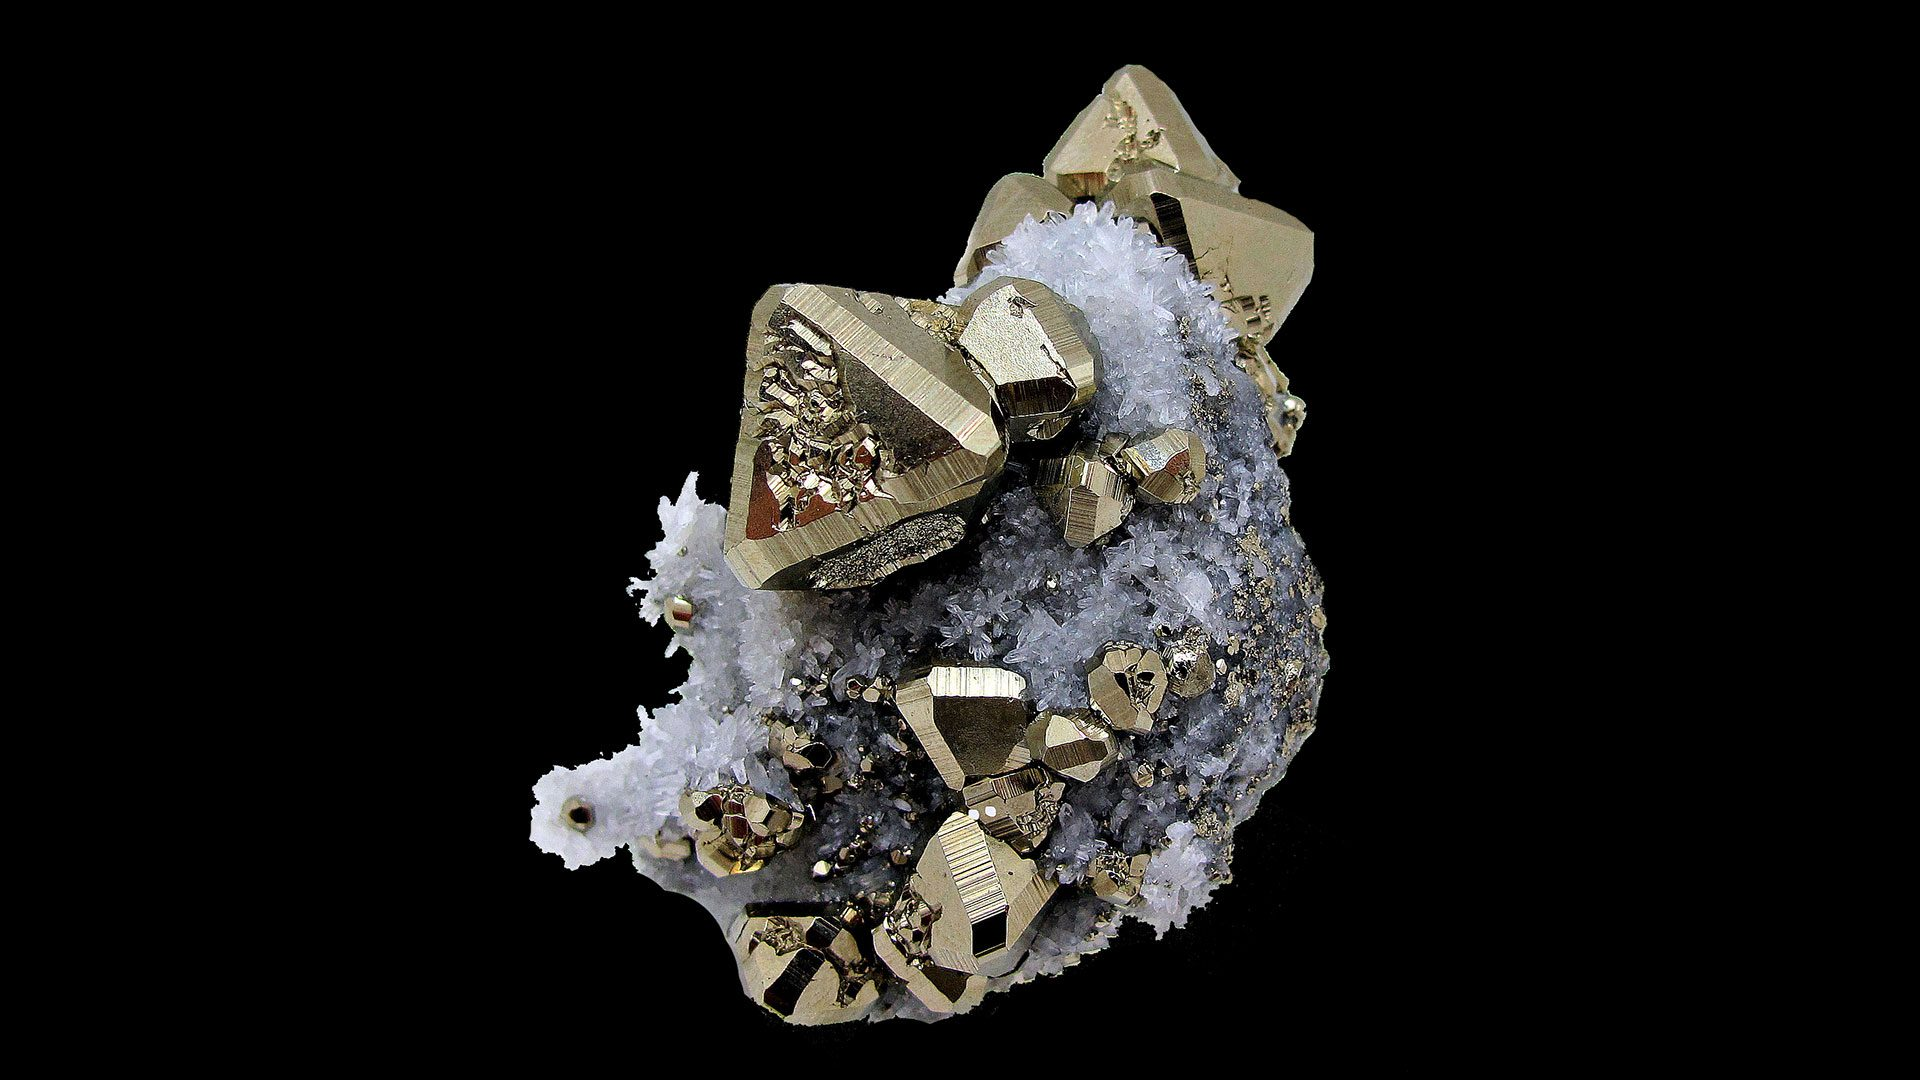 Pyrite Properties and Meaning - Original Photograph by Carles Millan (Background edited by Crystal Information)